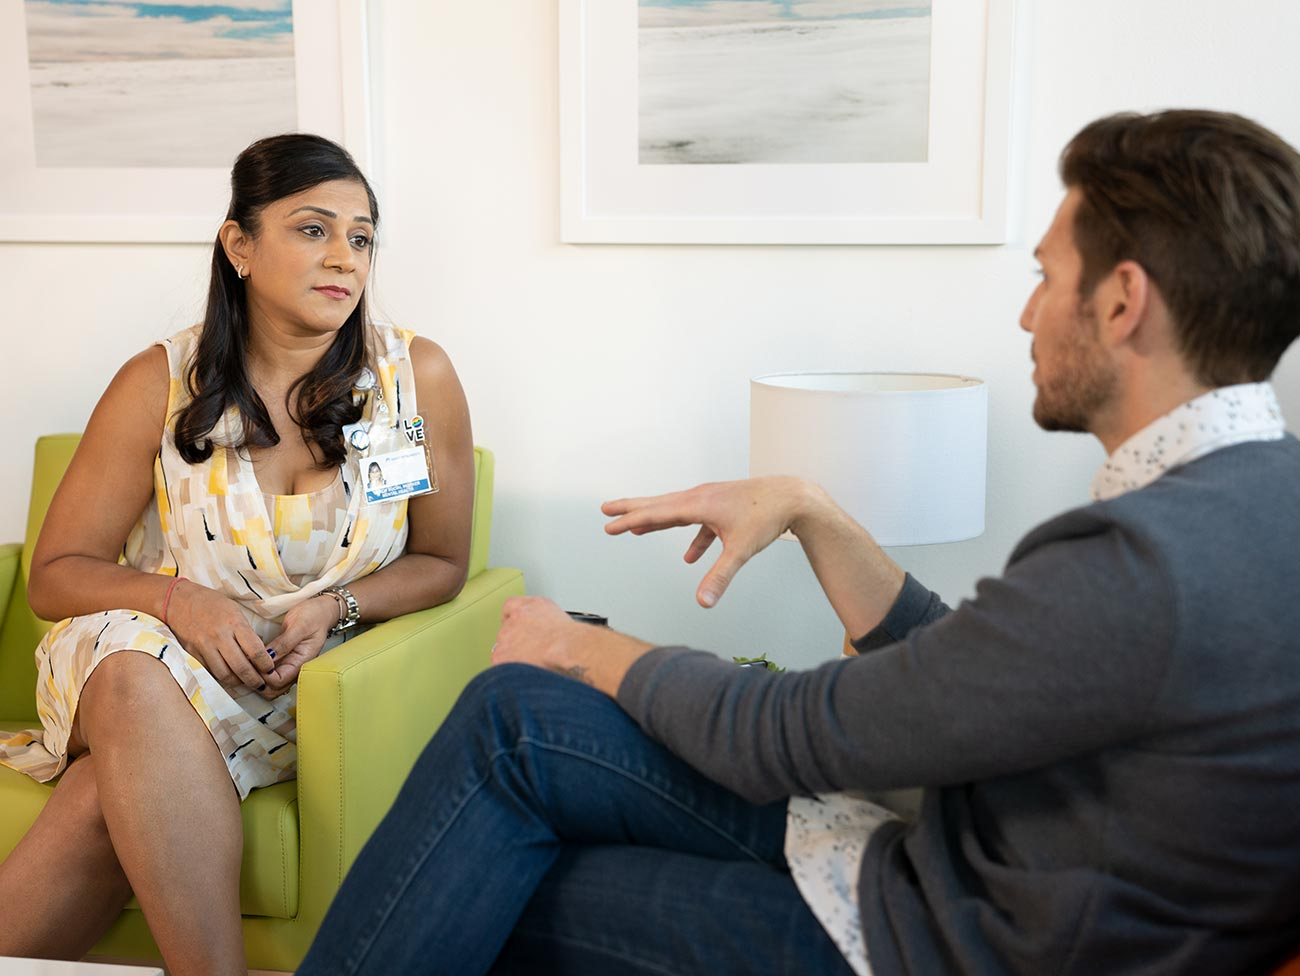 Female therapist consulting with a male patient.